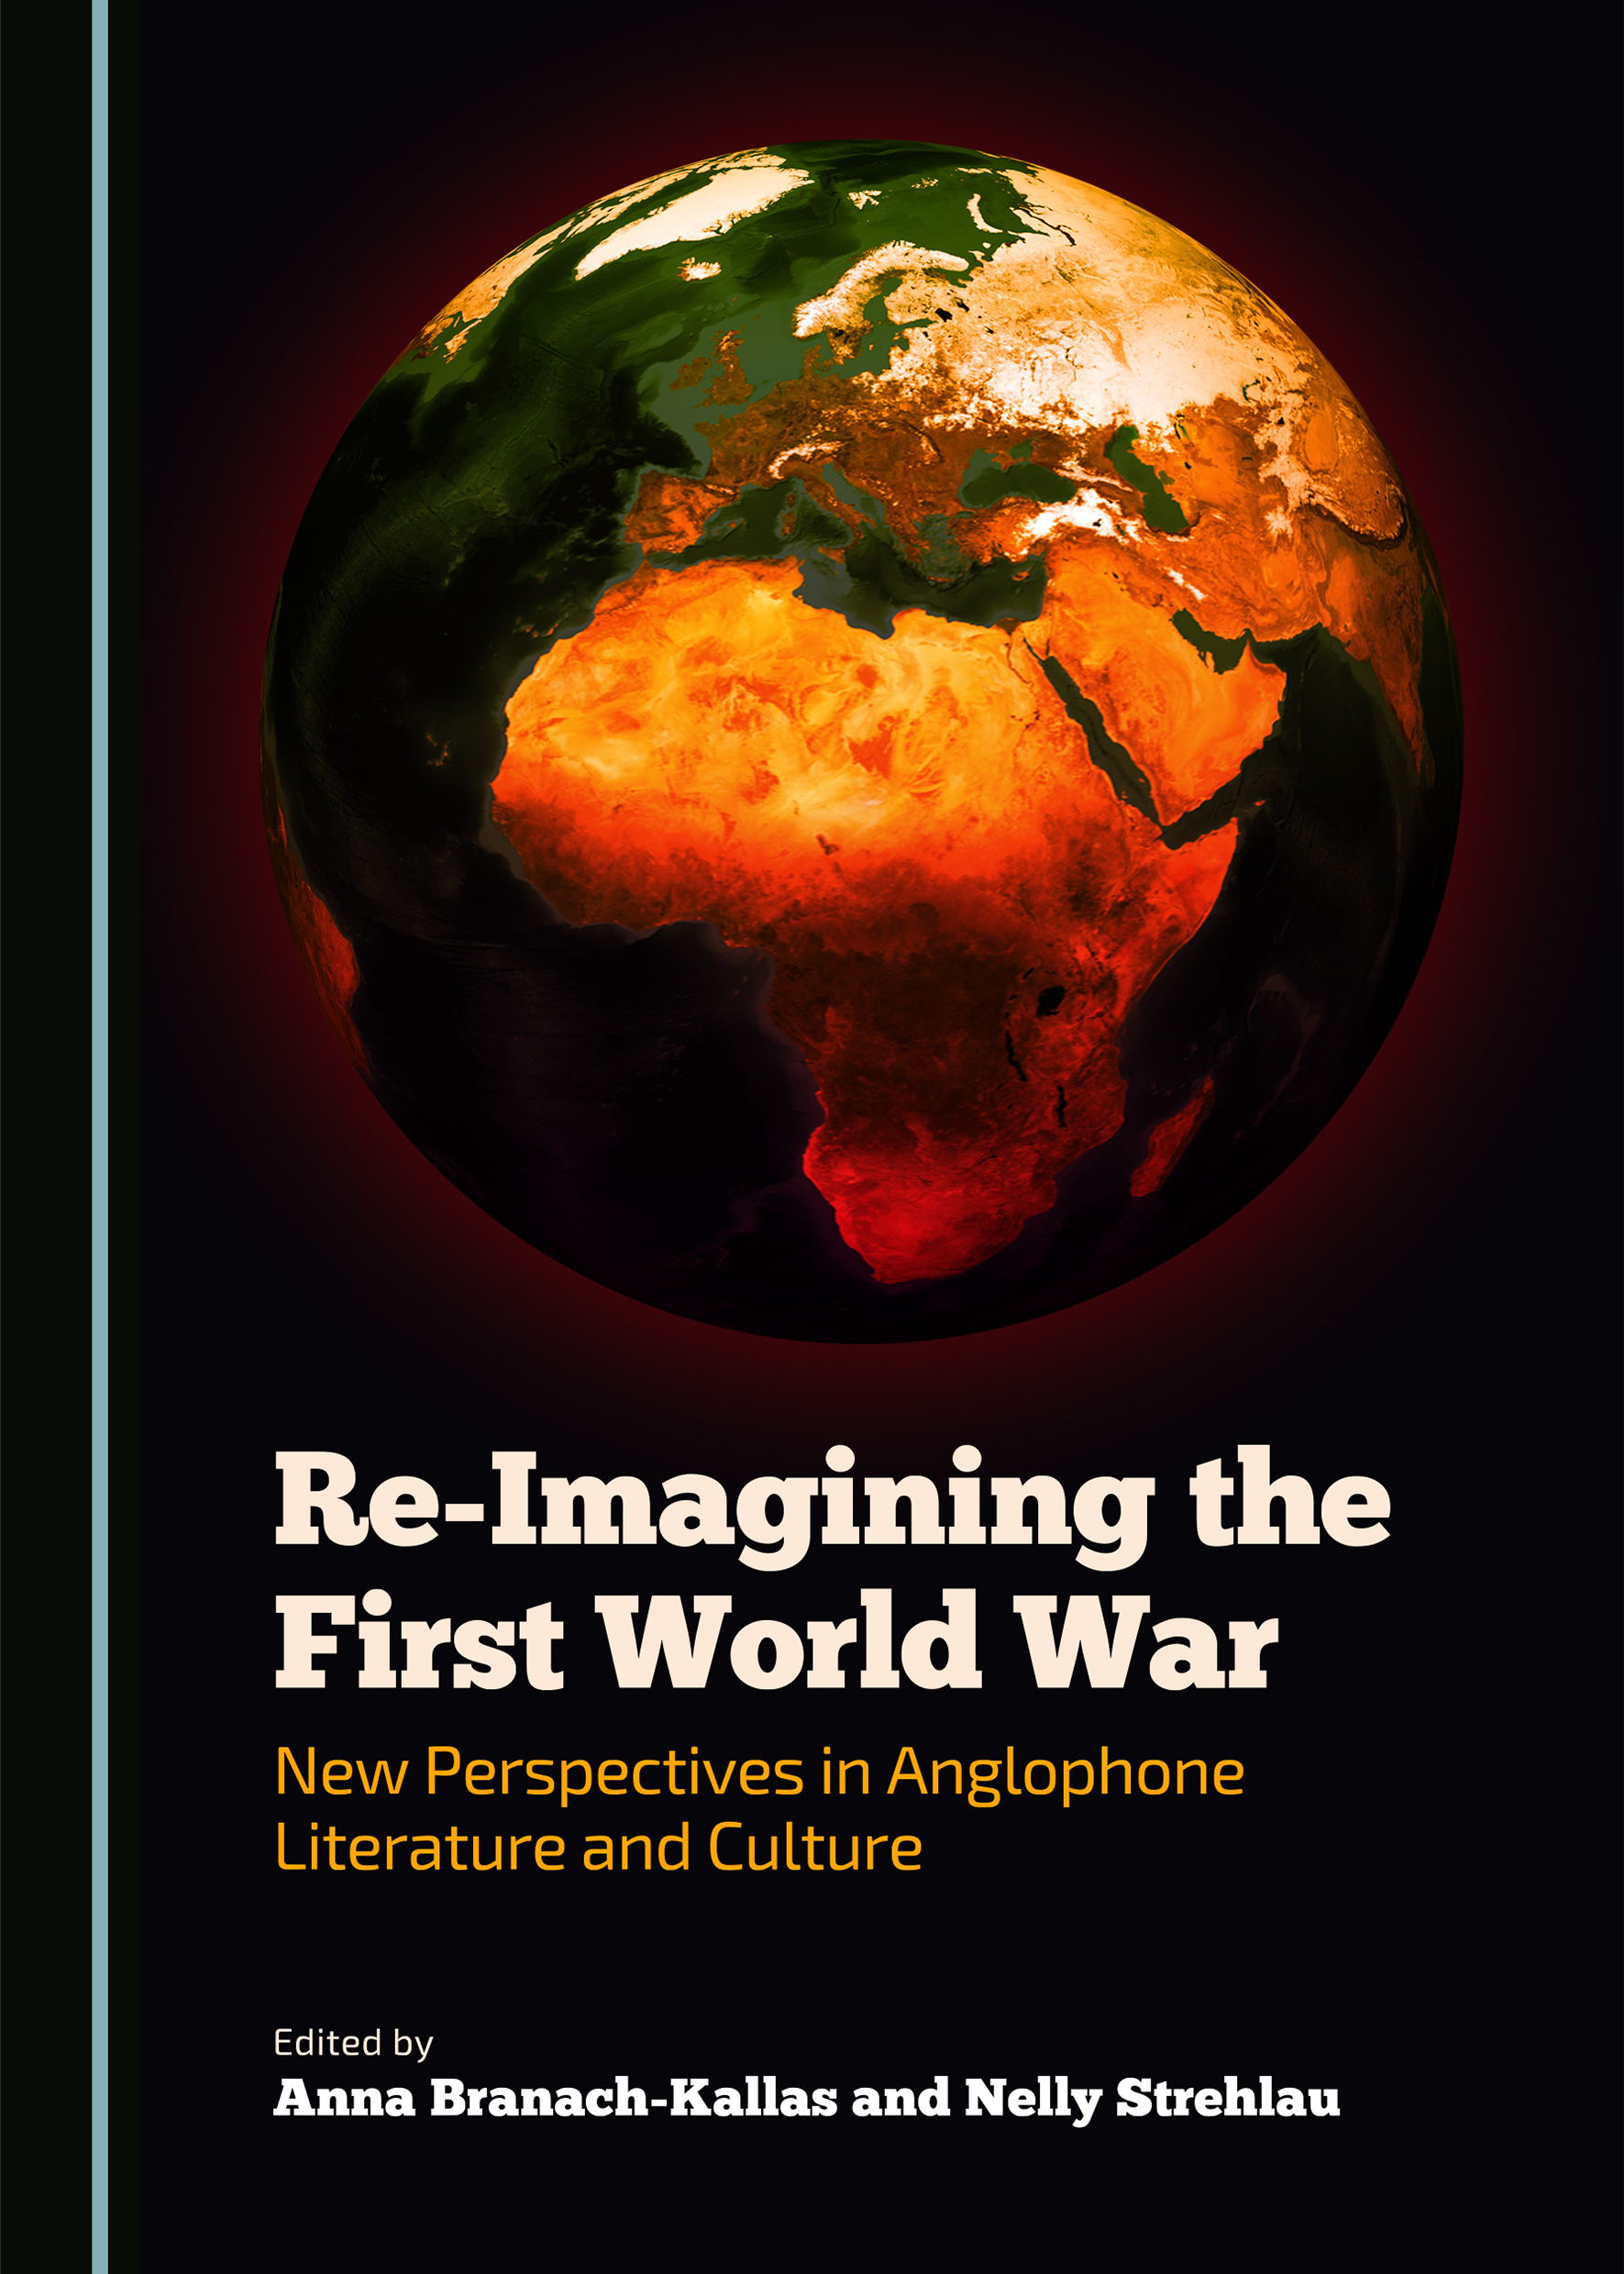 Re-Imagining the First World War: New Perspectives in Anglophone Literature and Culture